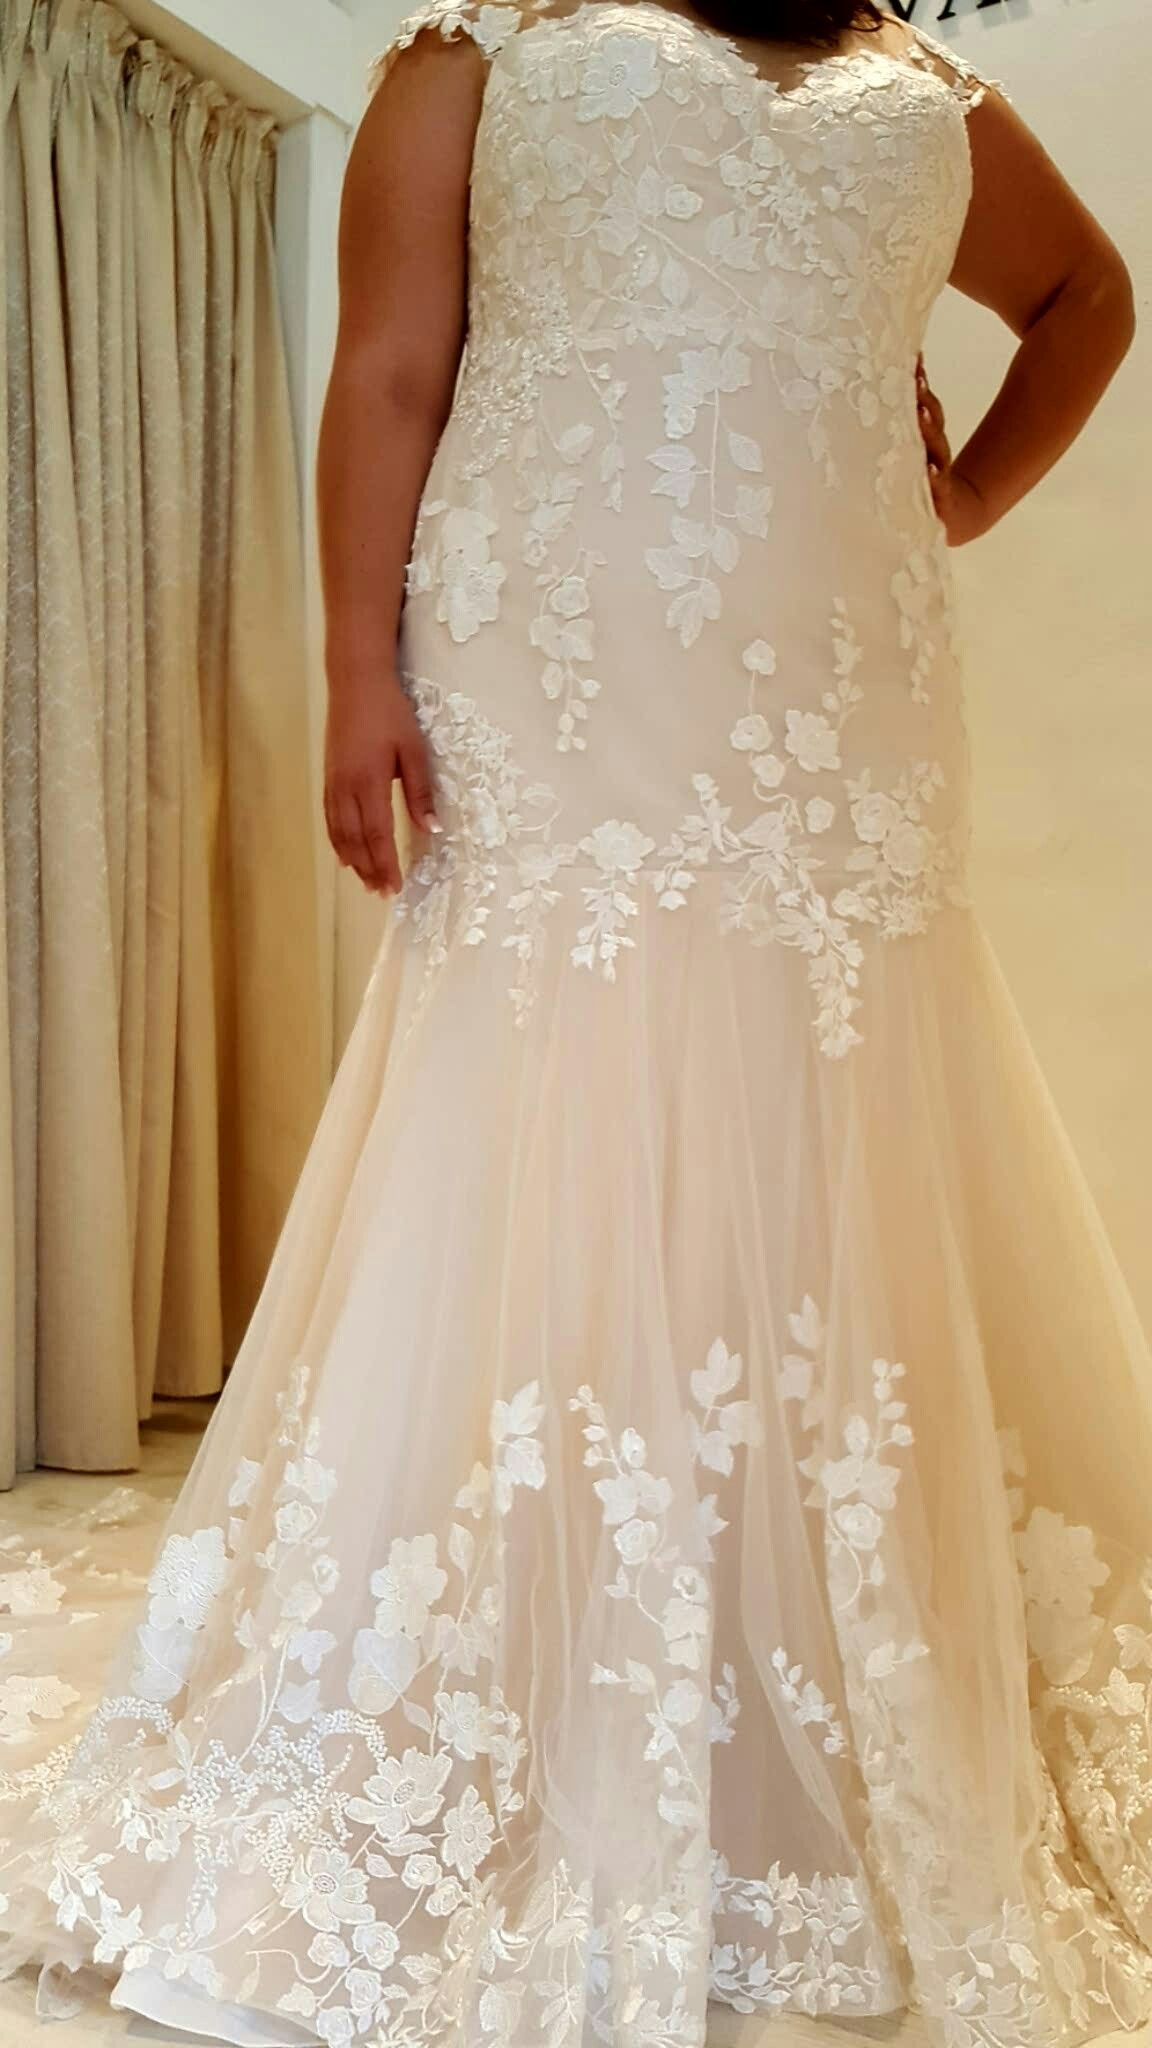 Rustic lace wedding dress  Plus size mermaid lace wedding gown with floral details Studio